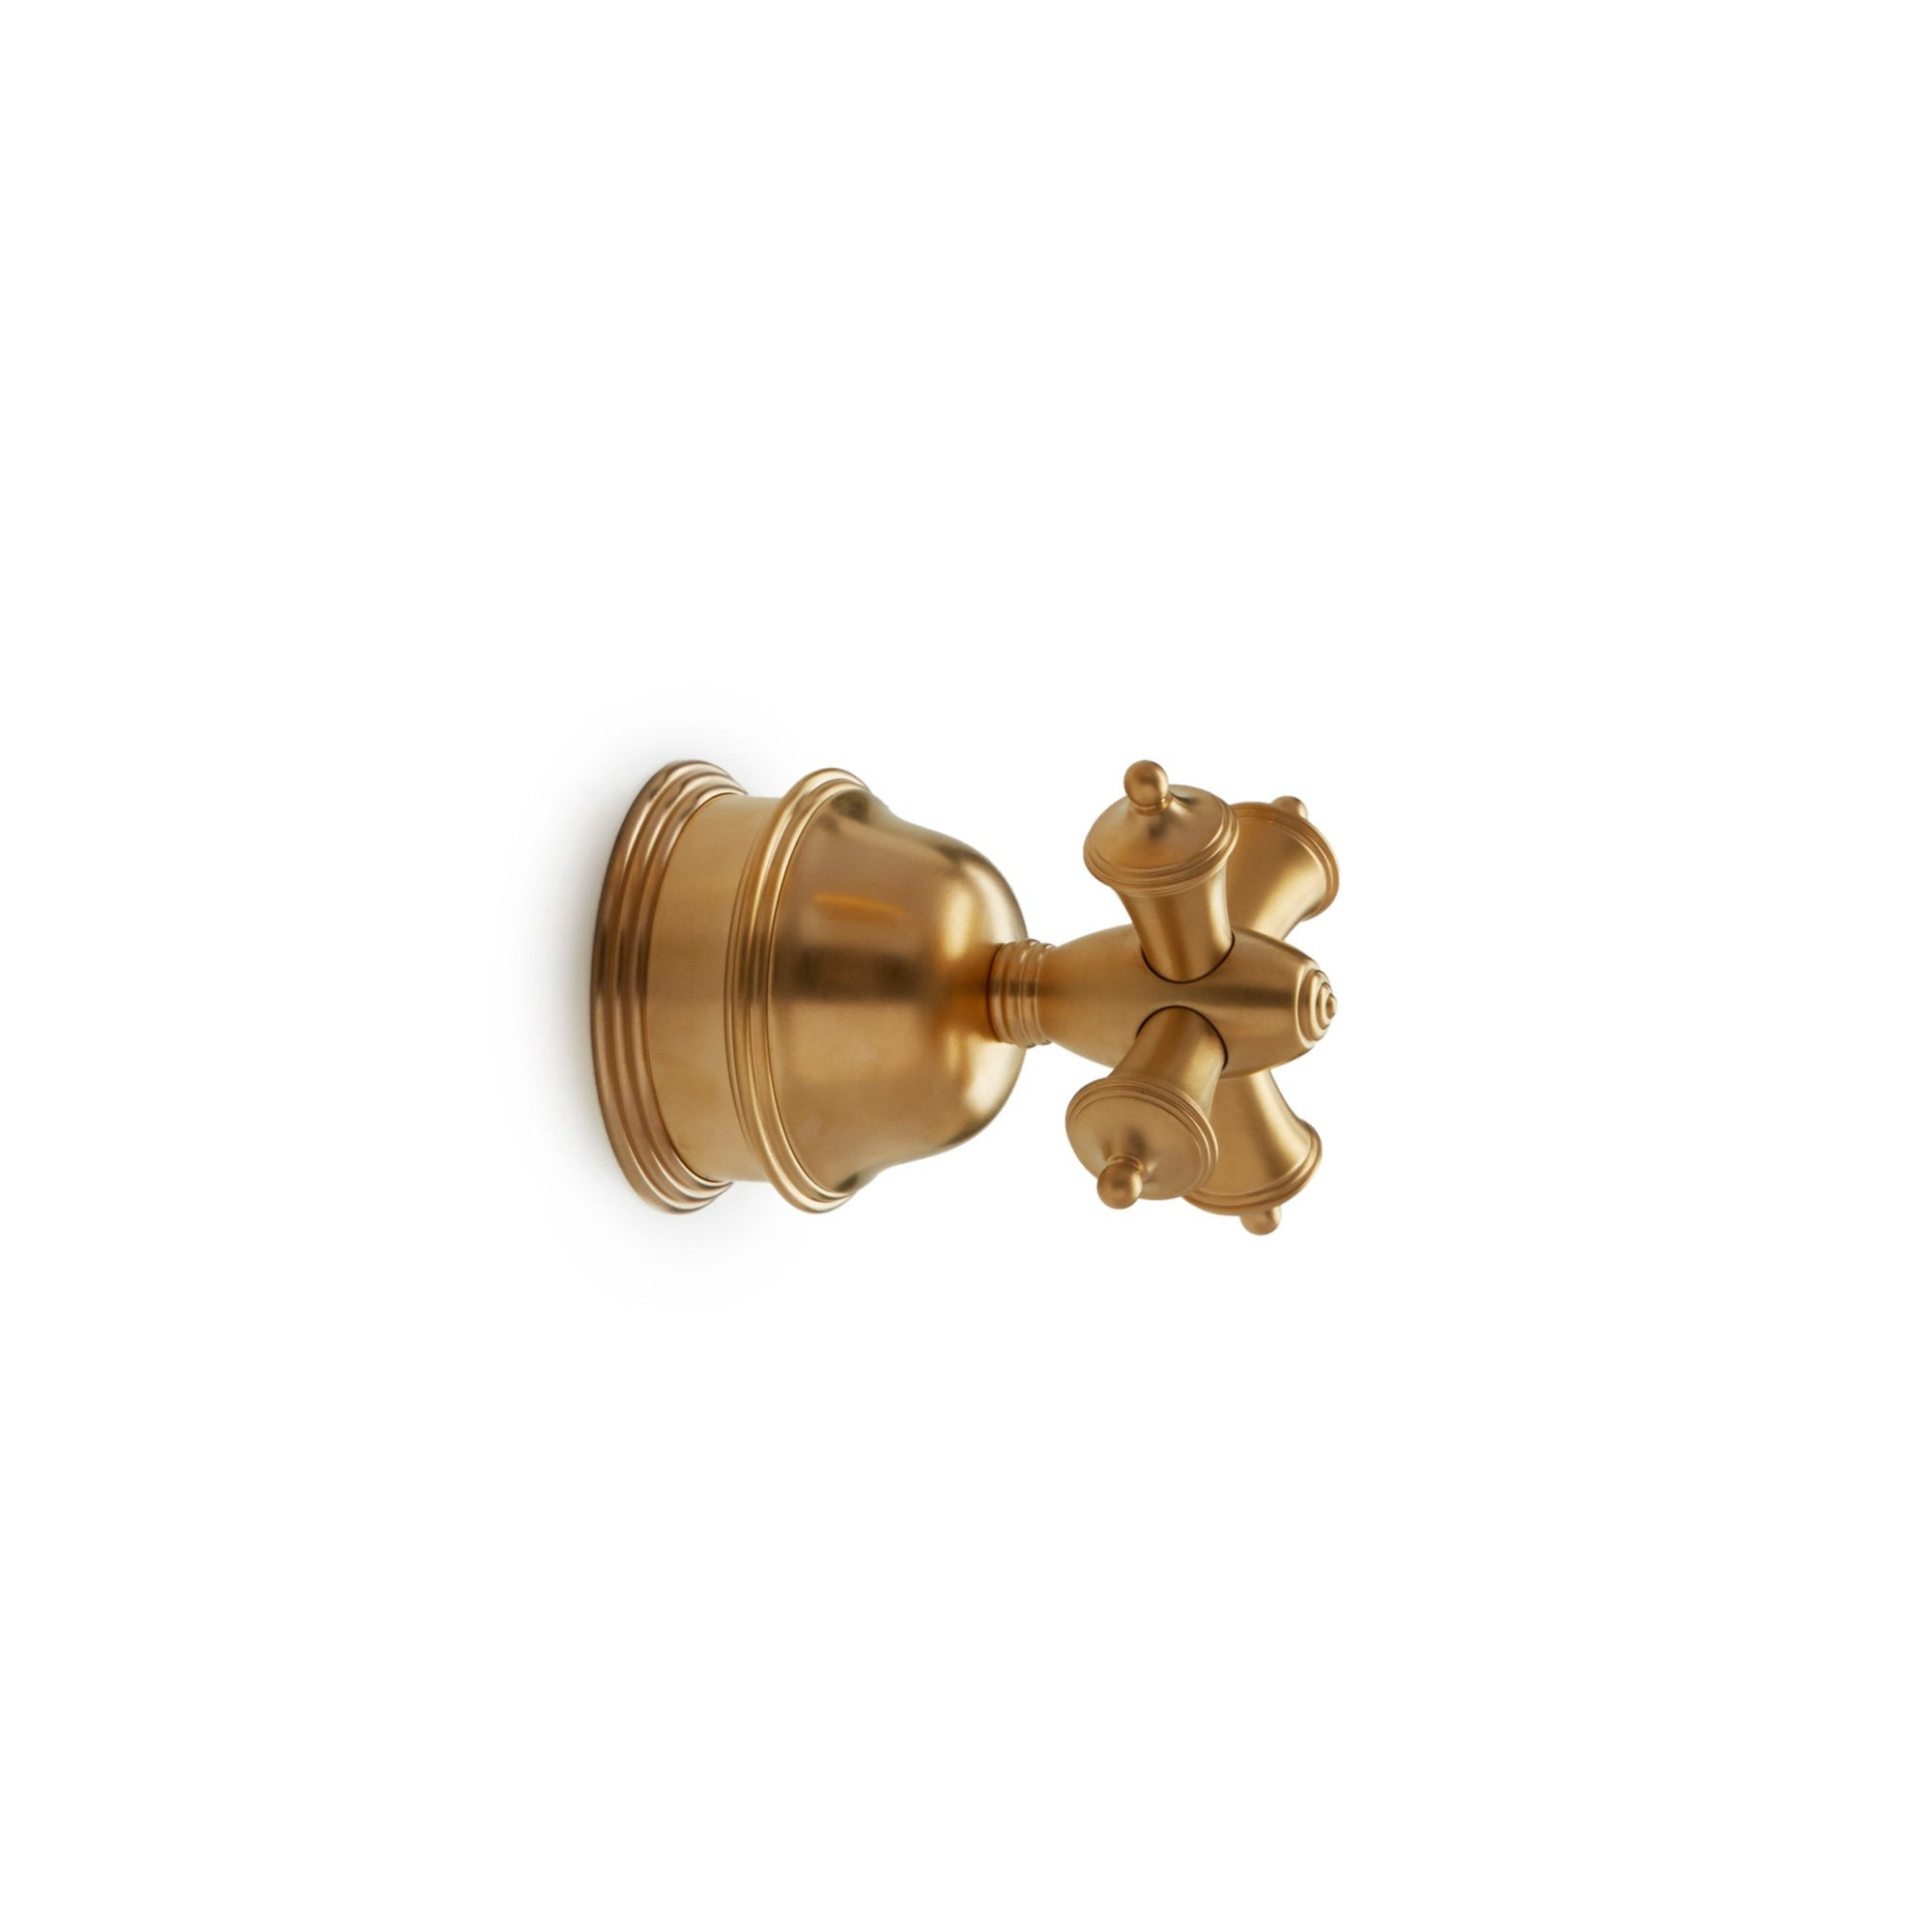 0993KB-ESC-GP Sherle Wagner International Grey Series II Cross Handle Volume Control and Diverter Trim in Gold Plate metal finish